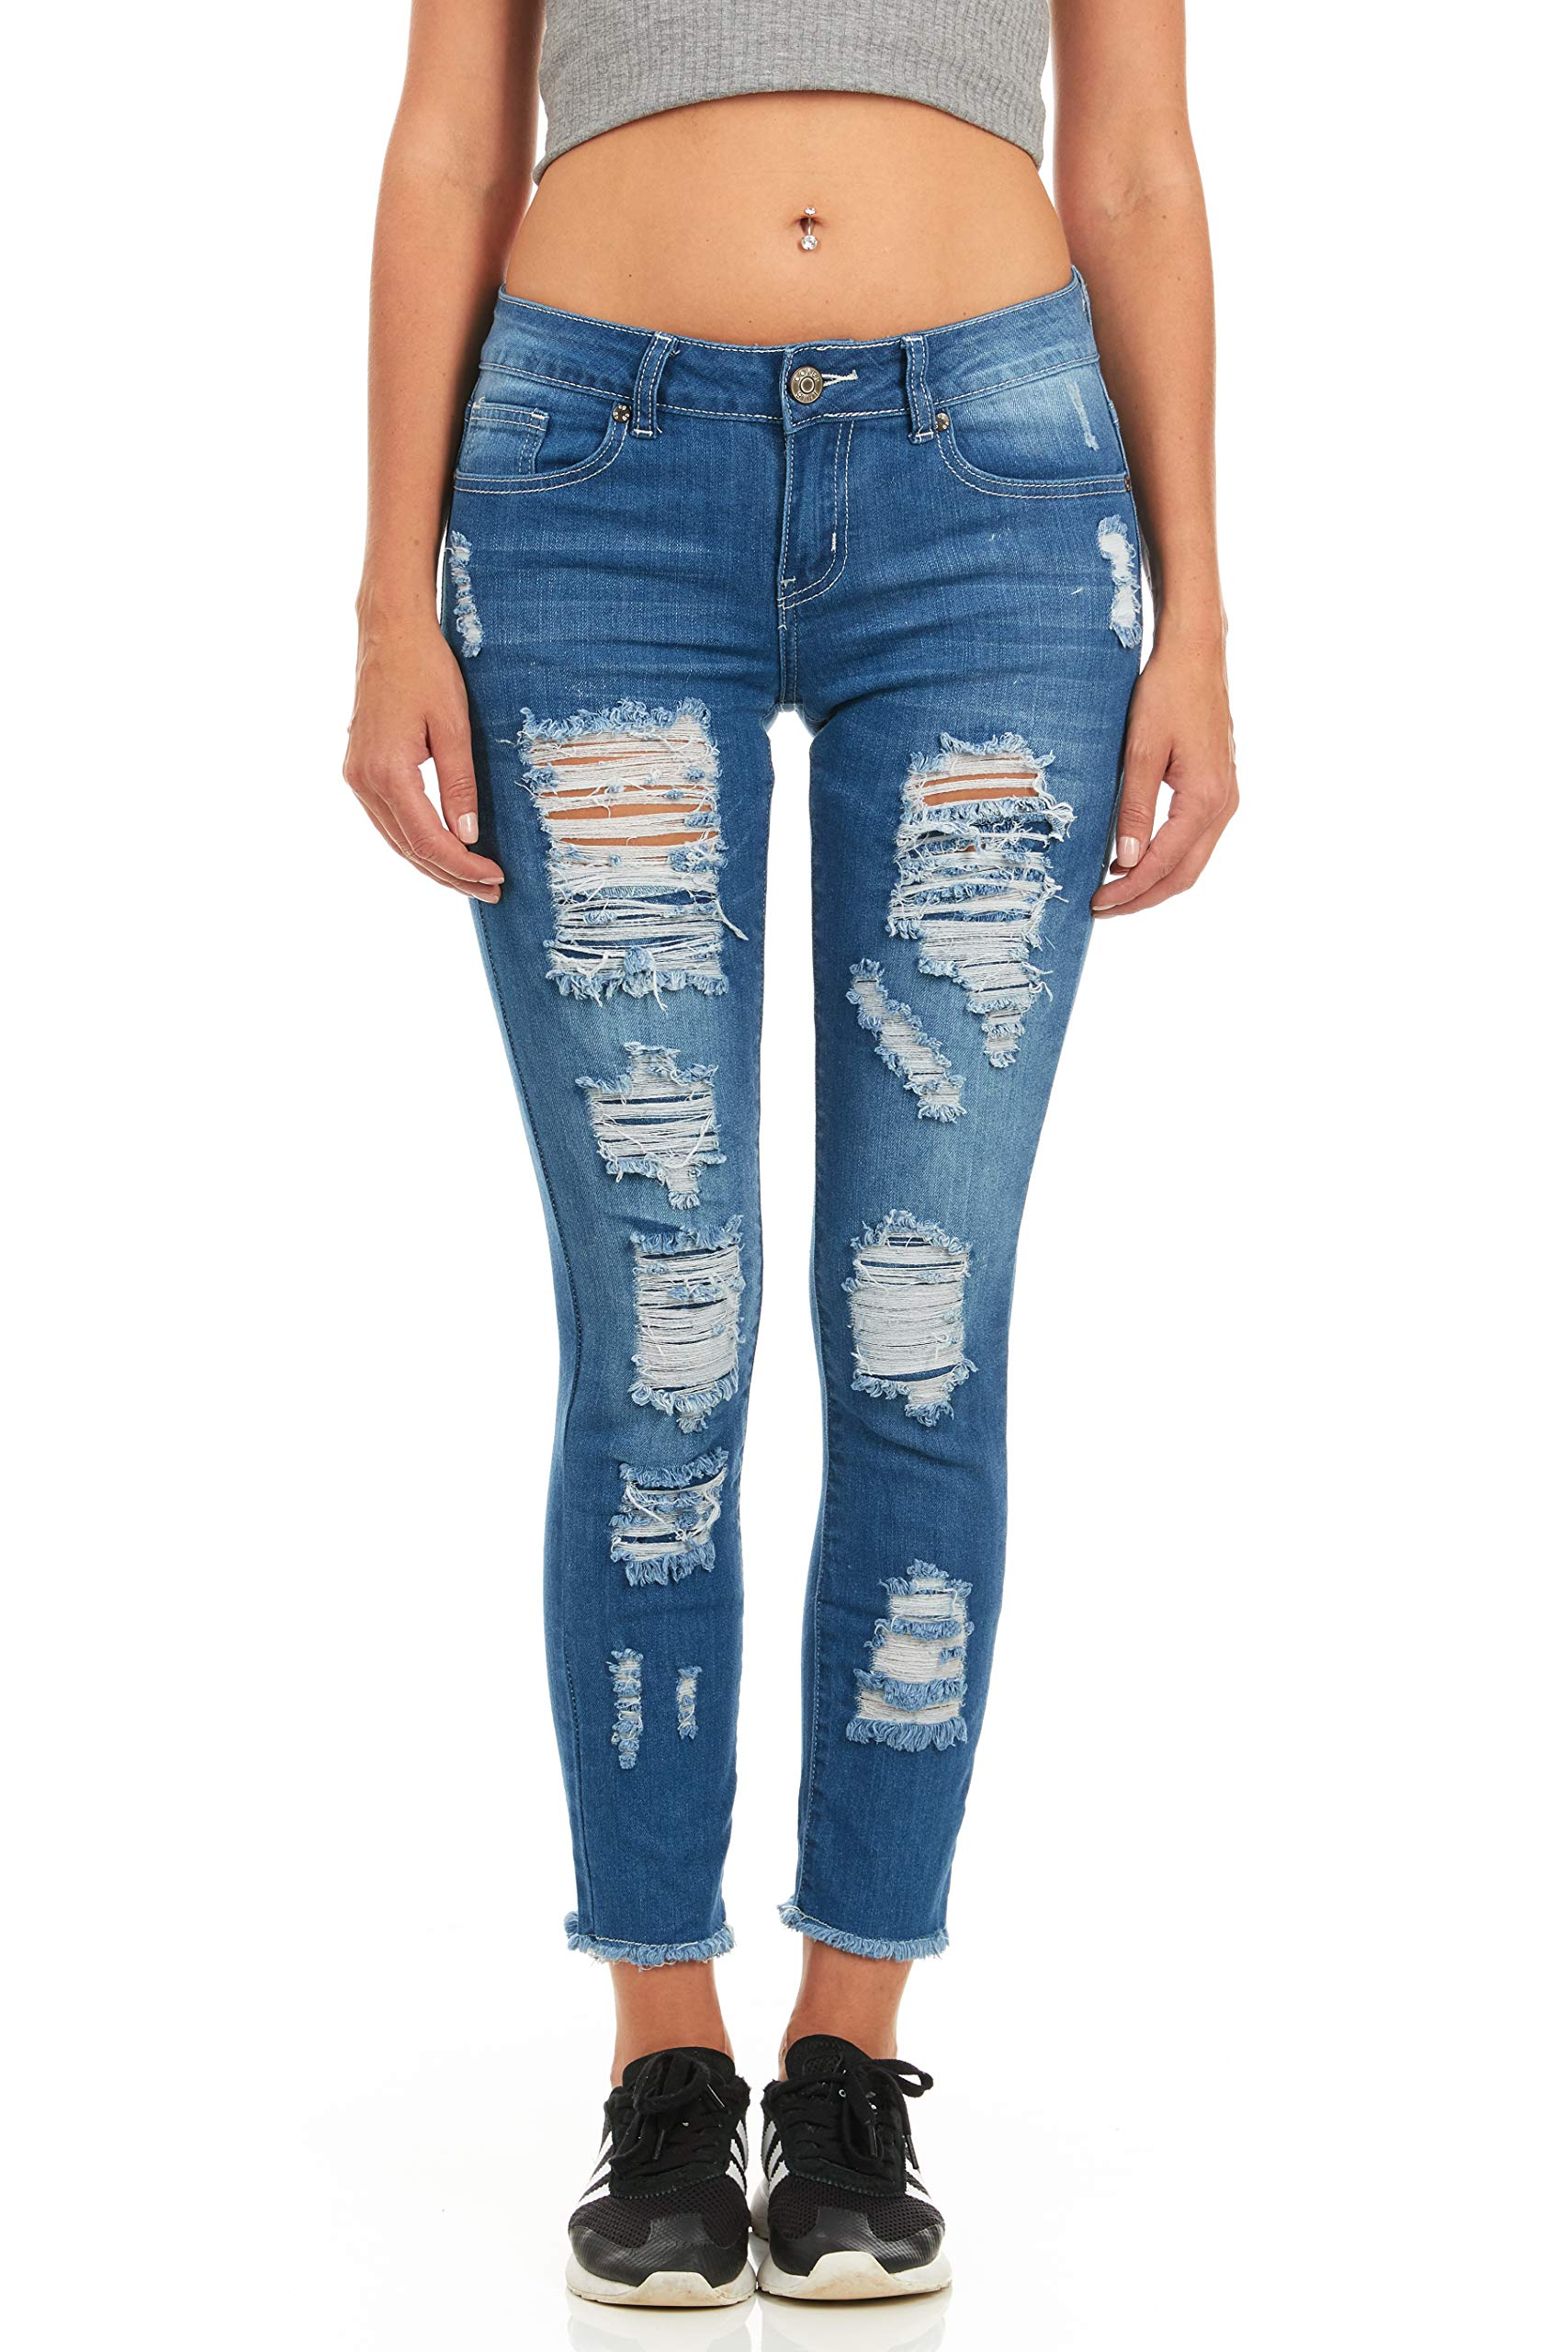 Cover Girl Mid-Rise Distressed Skinny Jeans for Women Juniors Size 1 Blue Step Hem